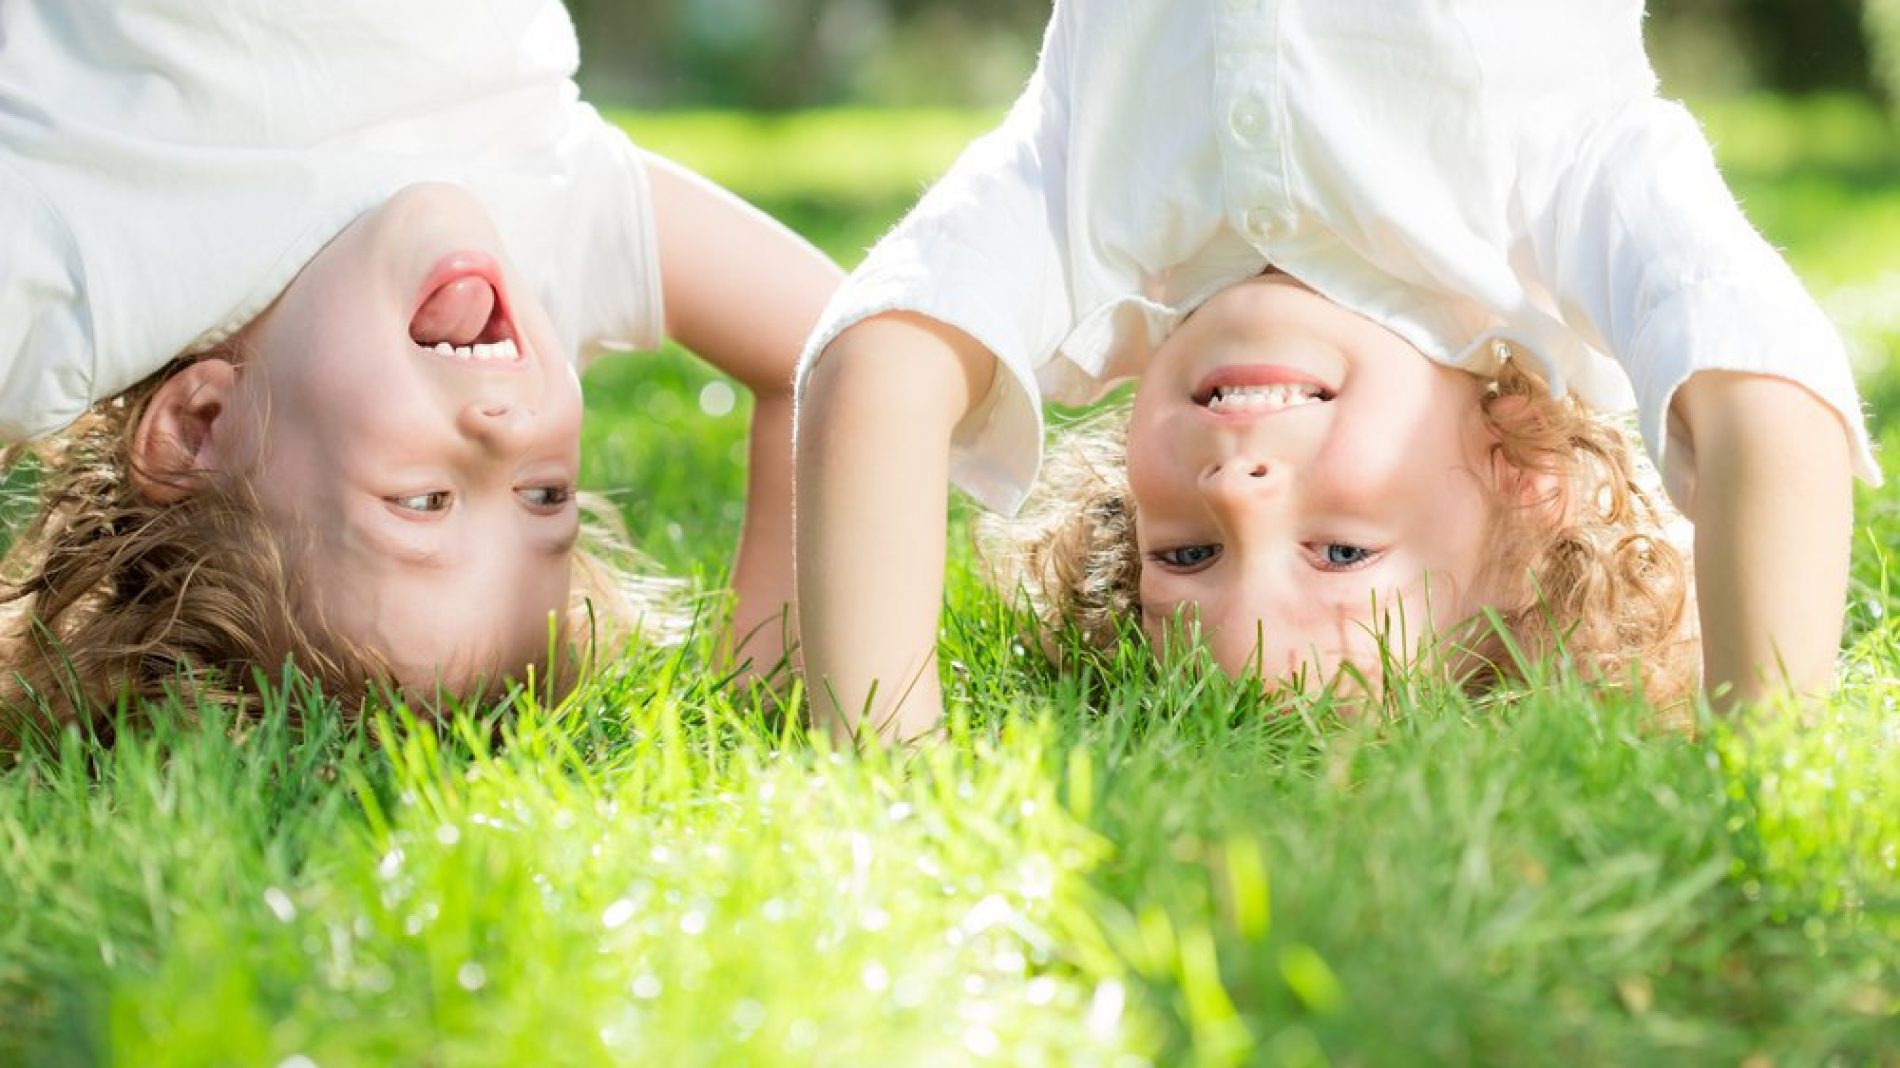 Two kinds doing head stands on grass